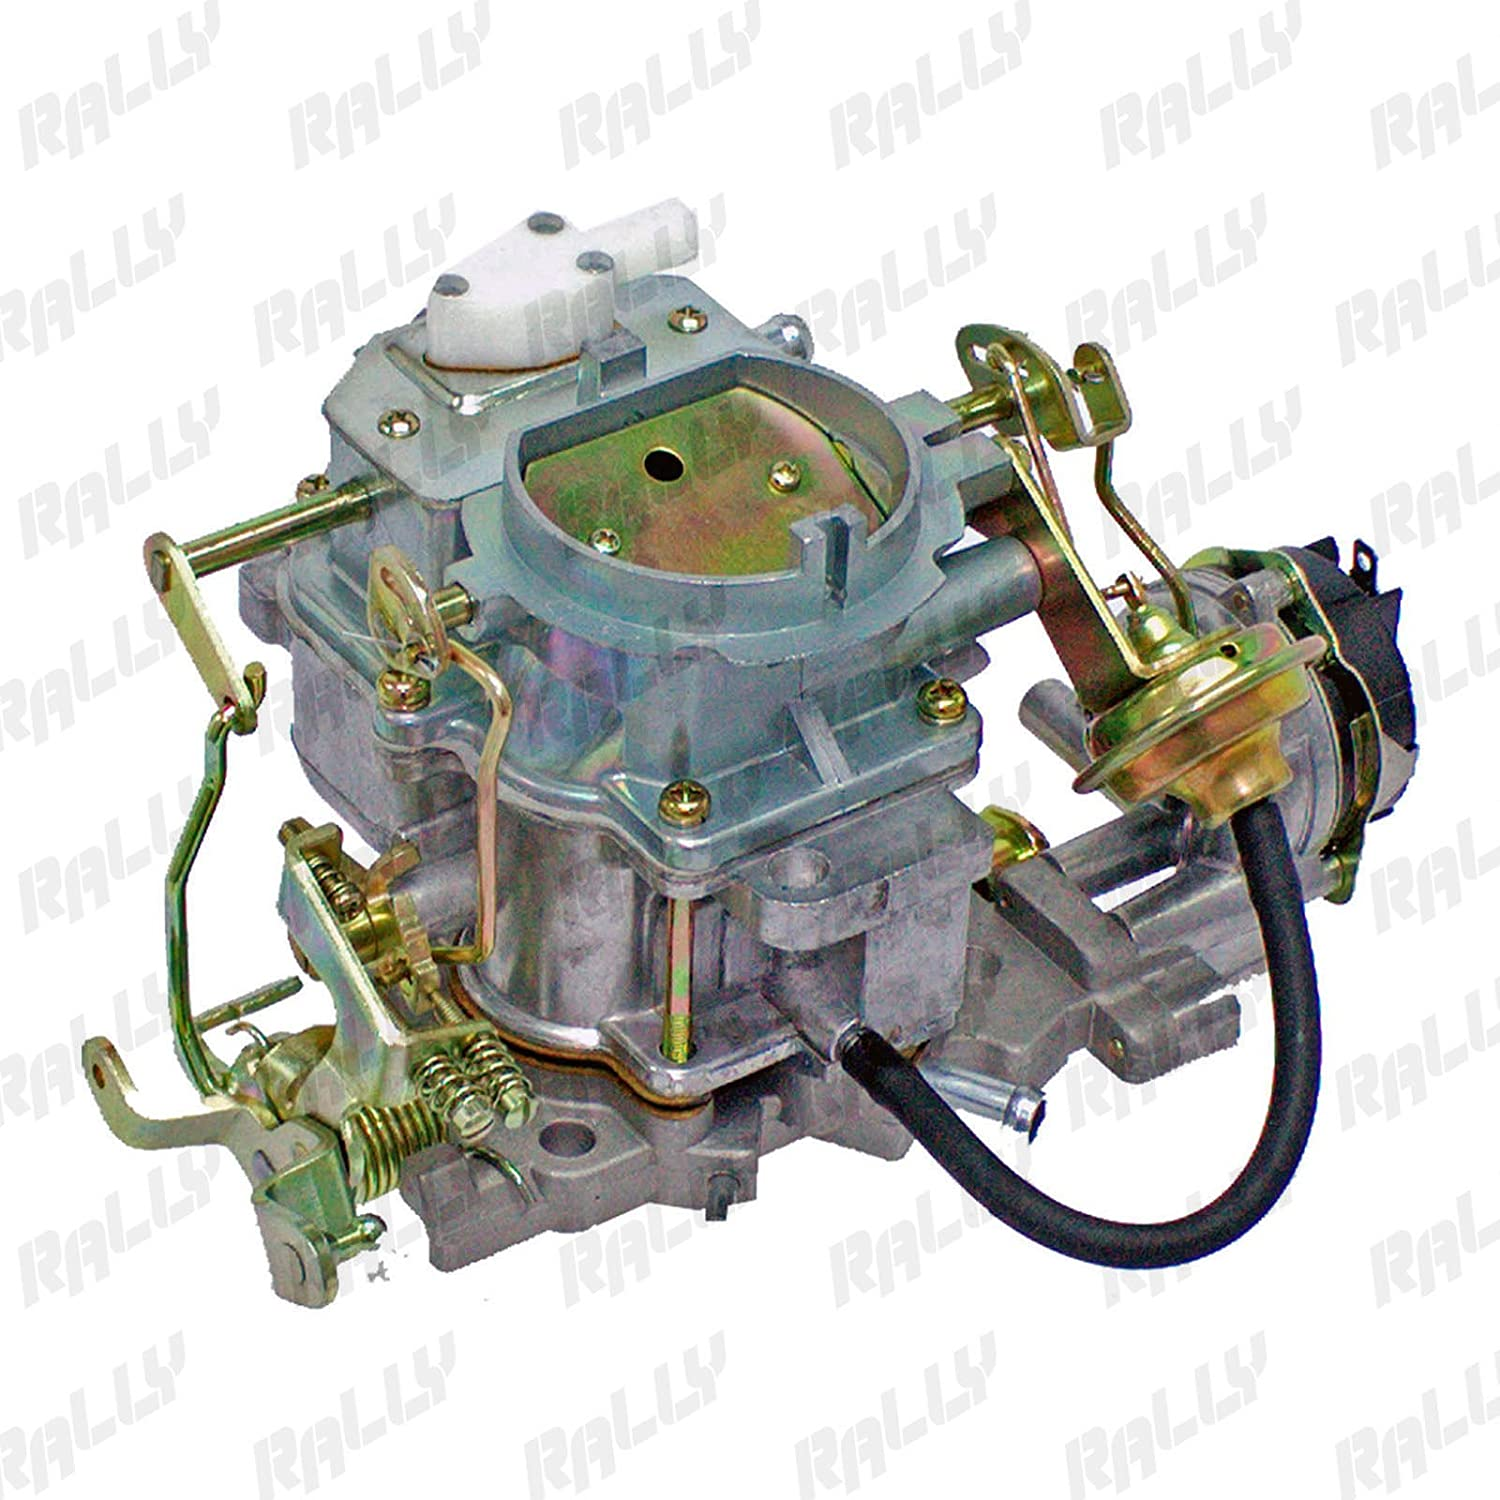 1988 Jeep Wrangler Carburetor Diagram | Wiring Diagram  Jeep Carburetor Diagrams on mercury wiring diagrams, 89 jeep vacuum diagram, 89 jeep j10 fuel line routing, 89 jeep yj carborautor diagram, 89 jeep engines,